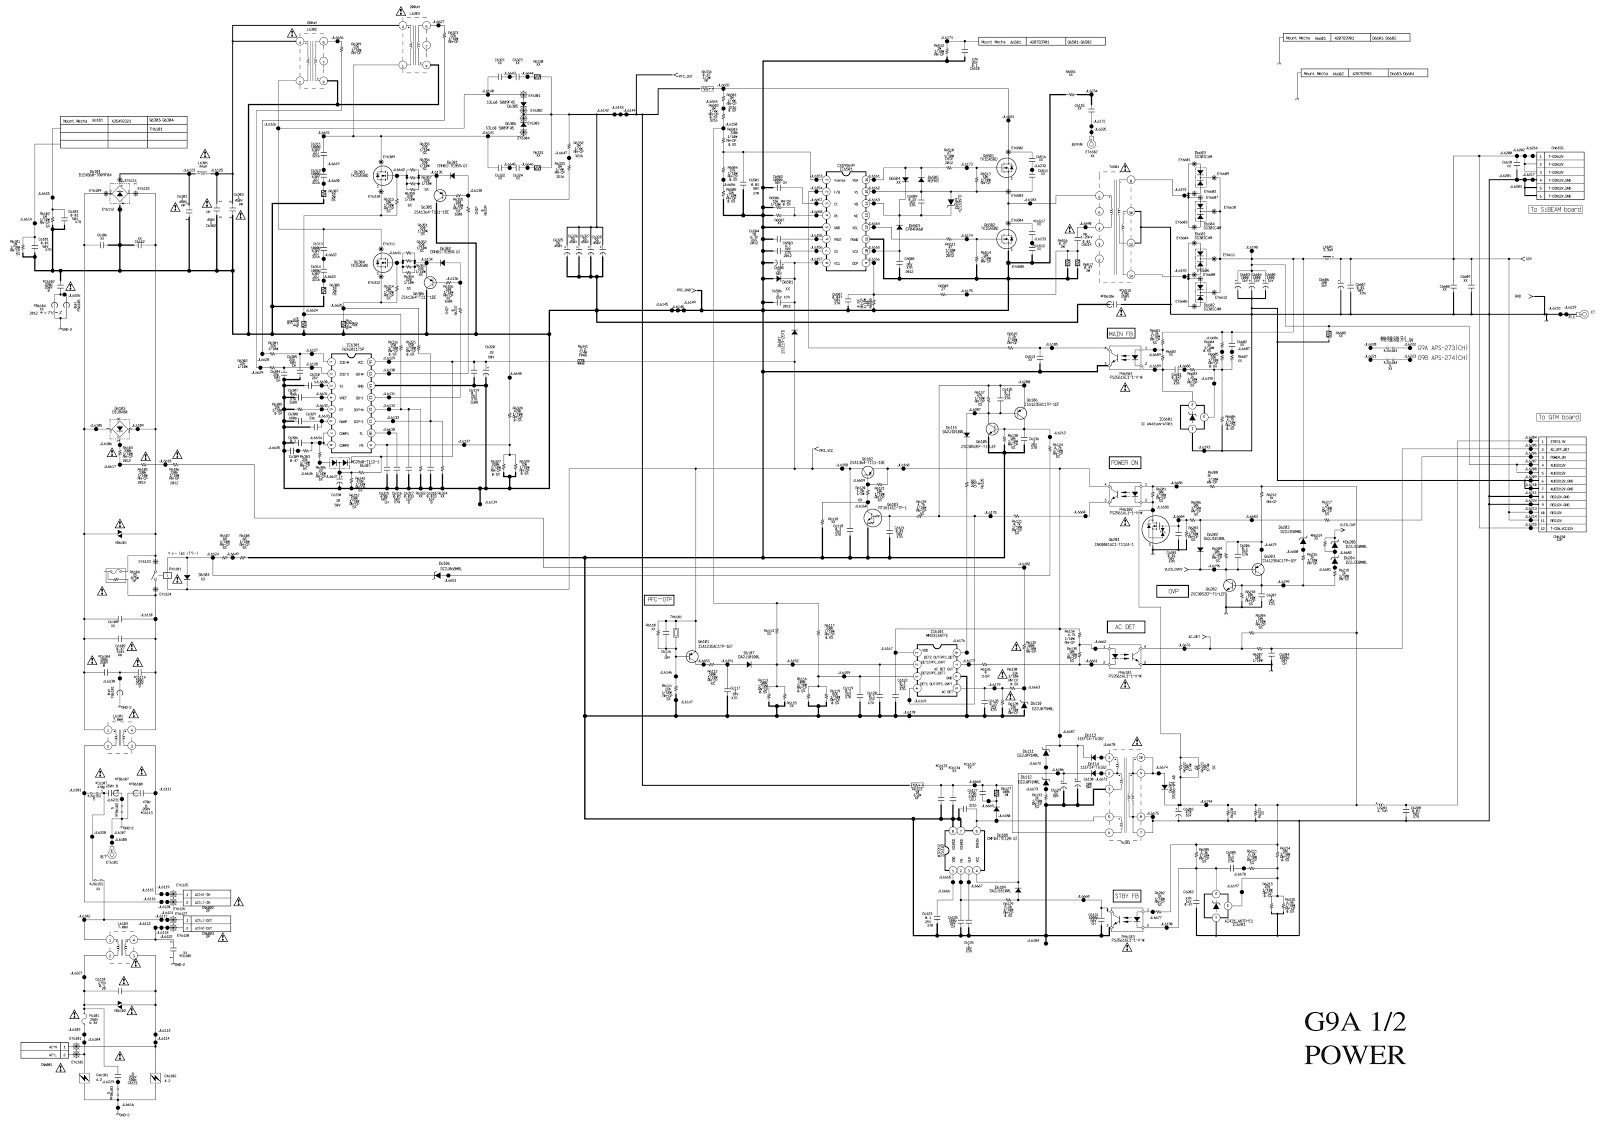 Sony G9a G9b And G10 Lcd Tv Power Supply Schematic